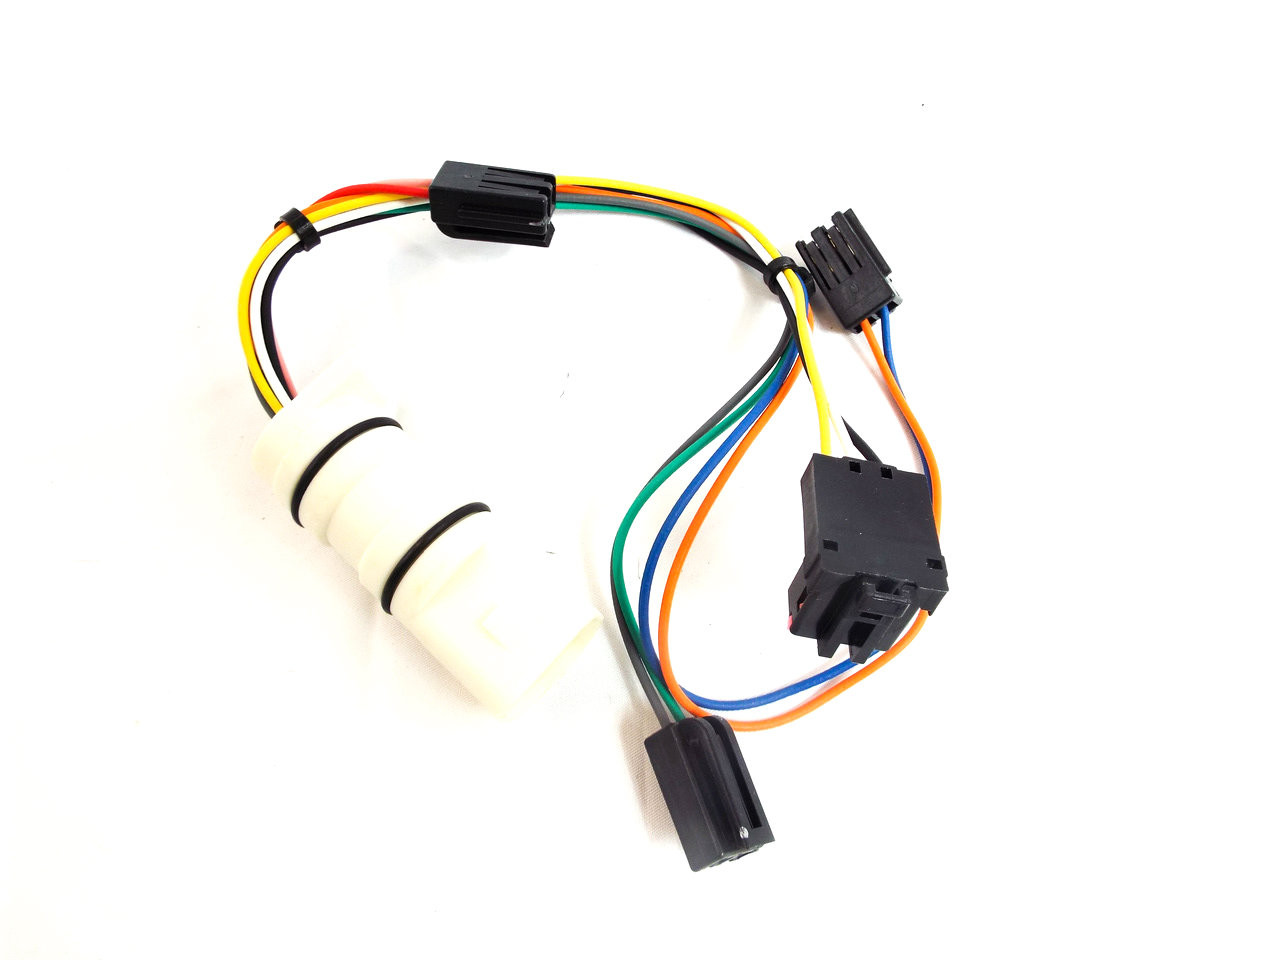 ford aode 4r70w internal wiring harness w case connector f2vy 7g276 aaode wiring harness 7 [ 1280 x 960 Pixel ]